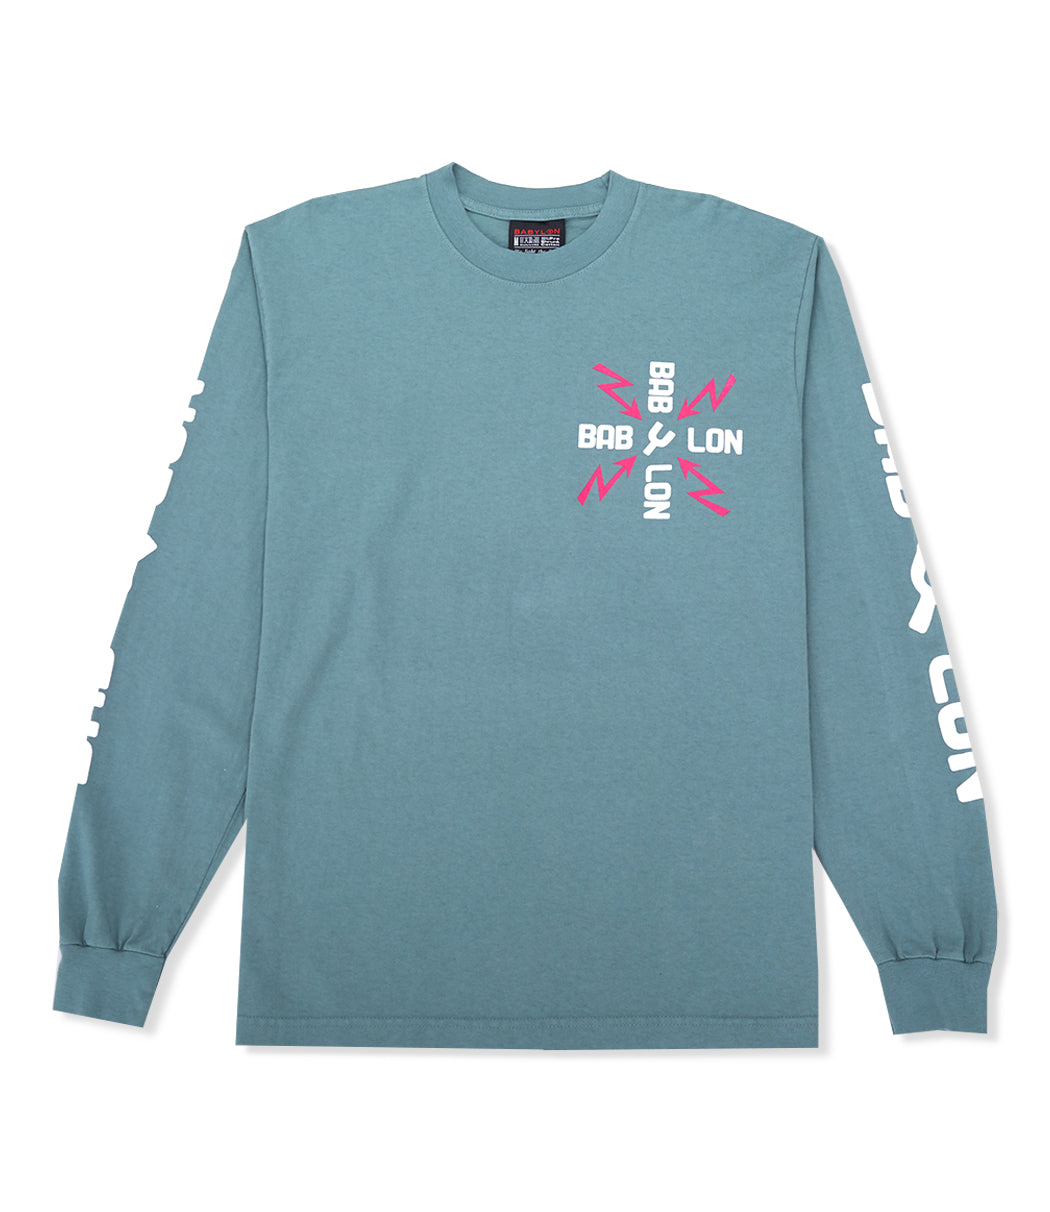 BABYLON POWER LONGSLEEVE